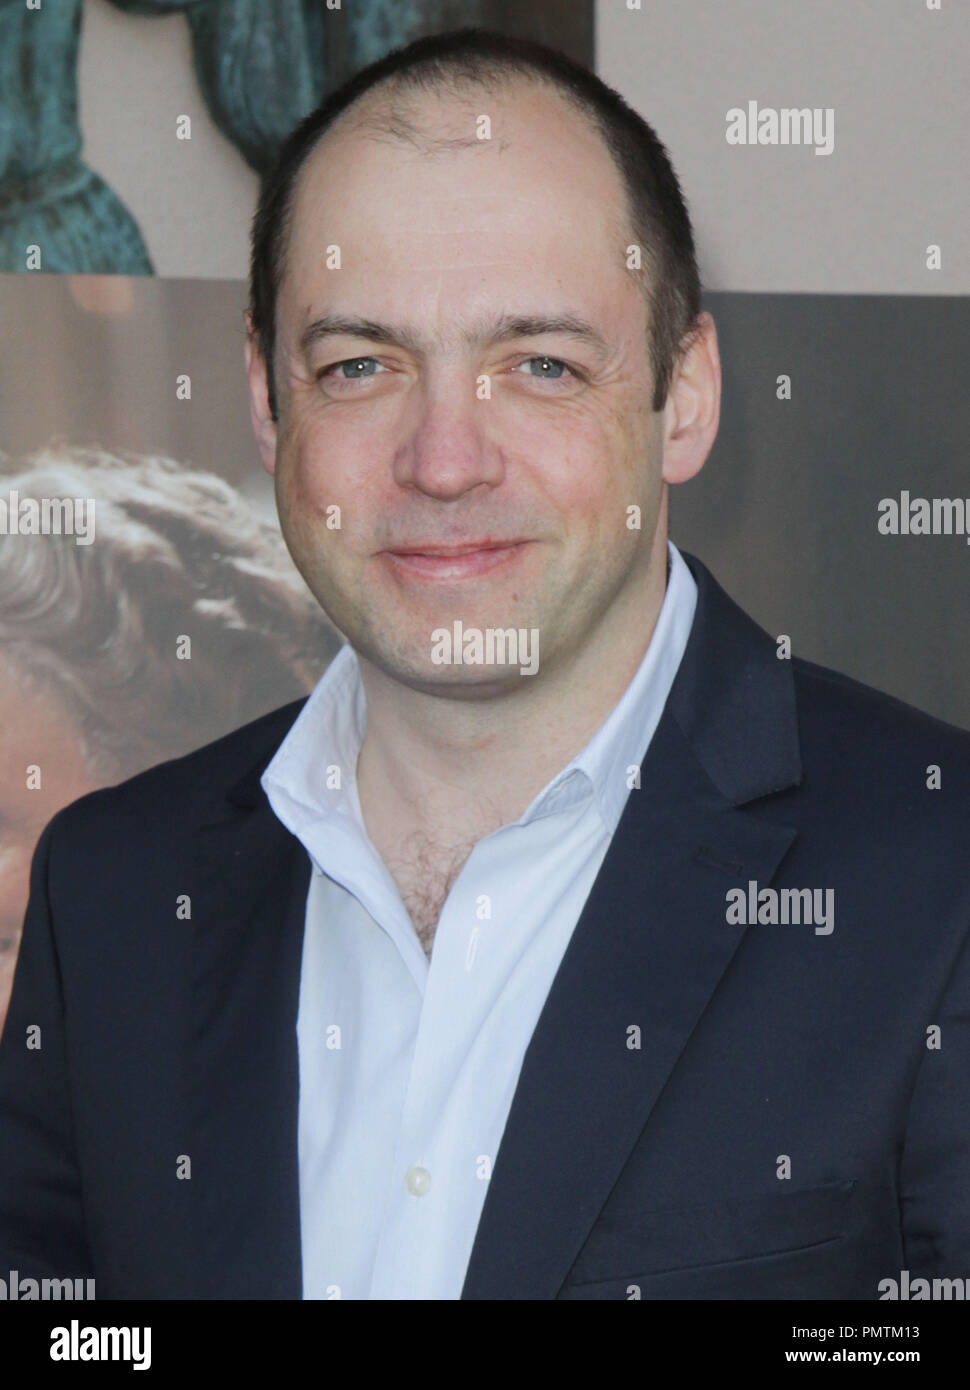 Gareth Neame attends An Evening With 'Downton Abbey' held at the Leonard H. Goldenson Theatre in North Hollywood, CA. The event took place on Monday, June 10, 2013.  Photo by Steven Lam_PRPP / PictureLux  File Reference # 31990_031PRPPSL  For Editorial Use Only -  All Rights Reserved - Stock Image